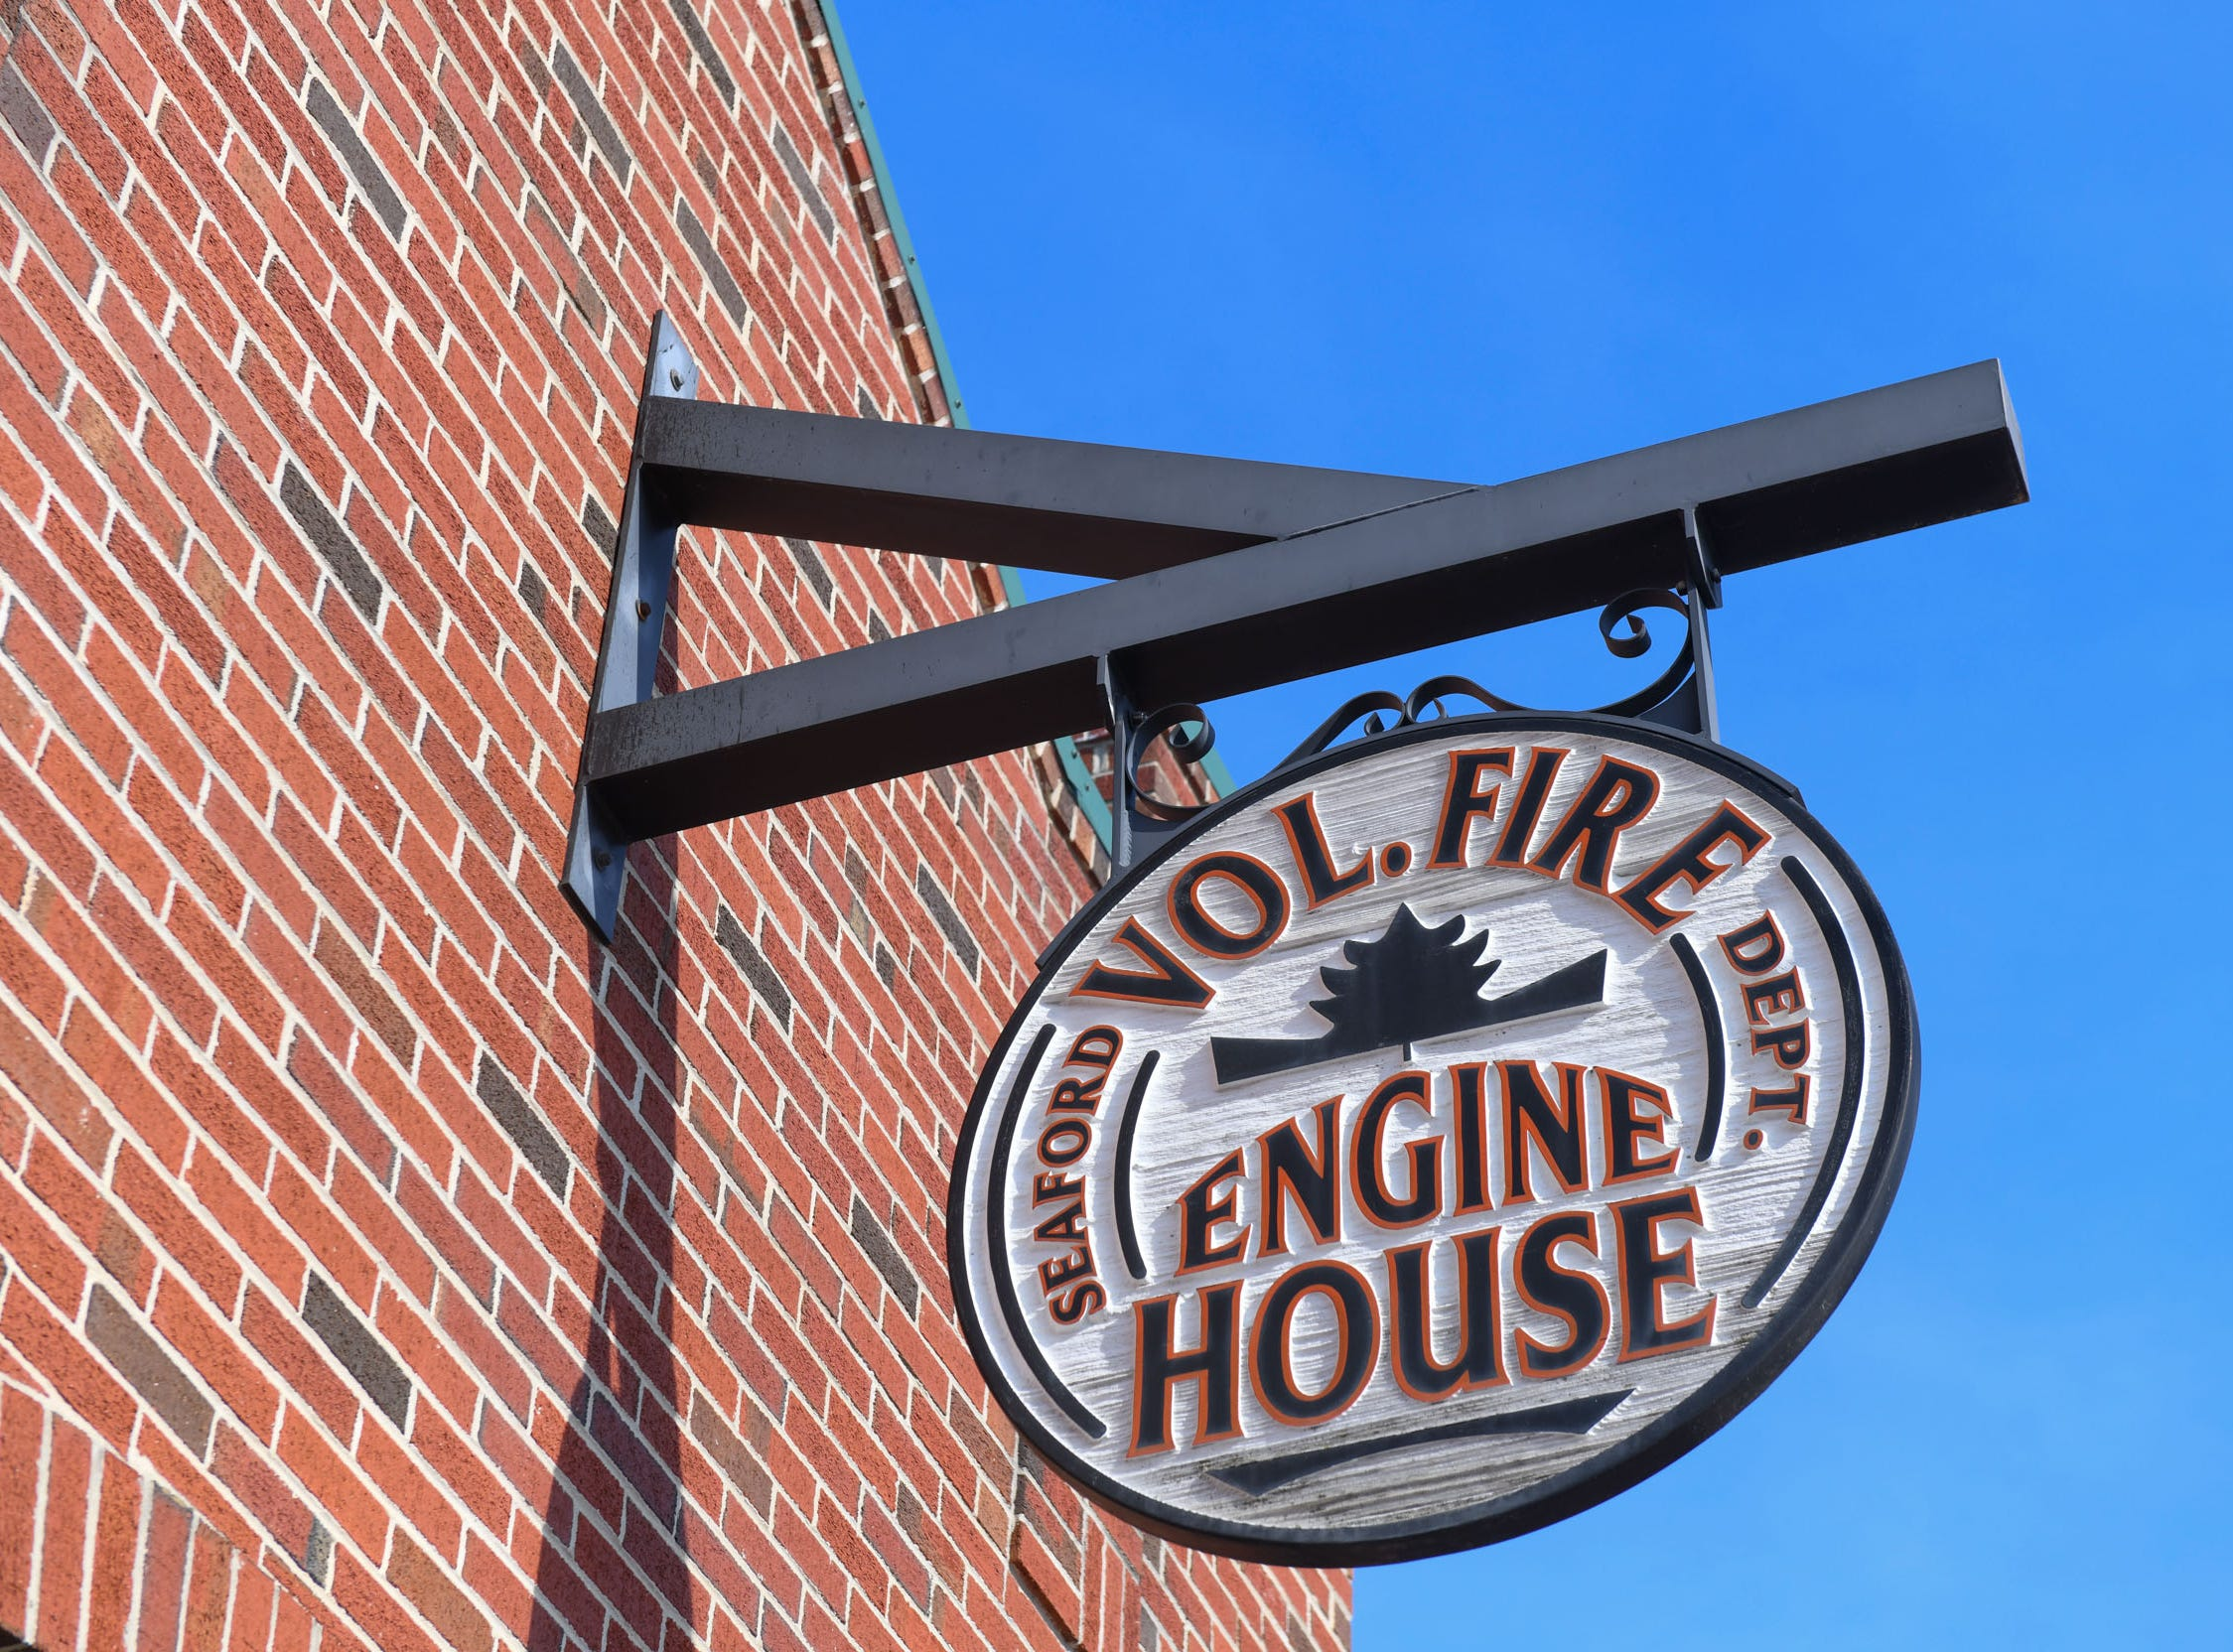 Seaford Volunteer Fire Department Engine House located in downtown Seaford houses two antique fire trucks that were original to the city and has been fully restored.